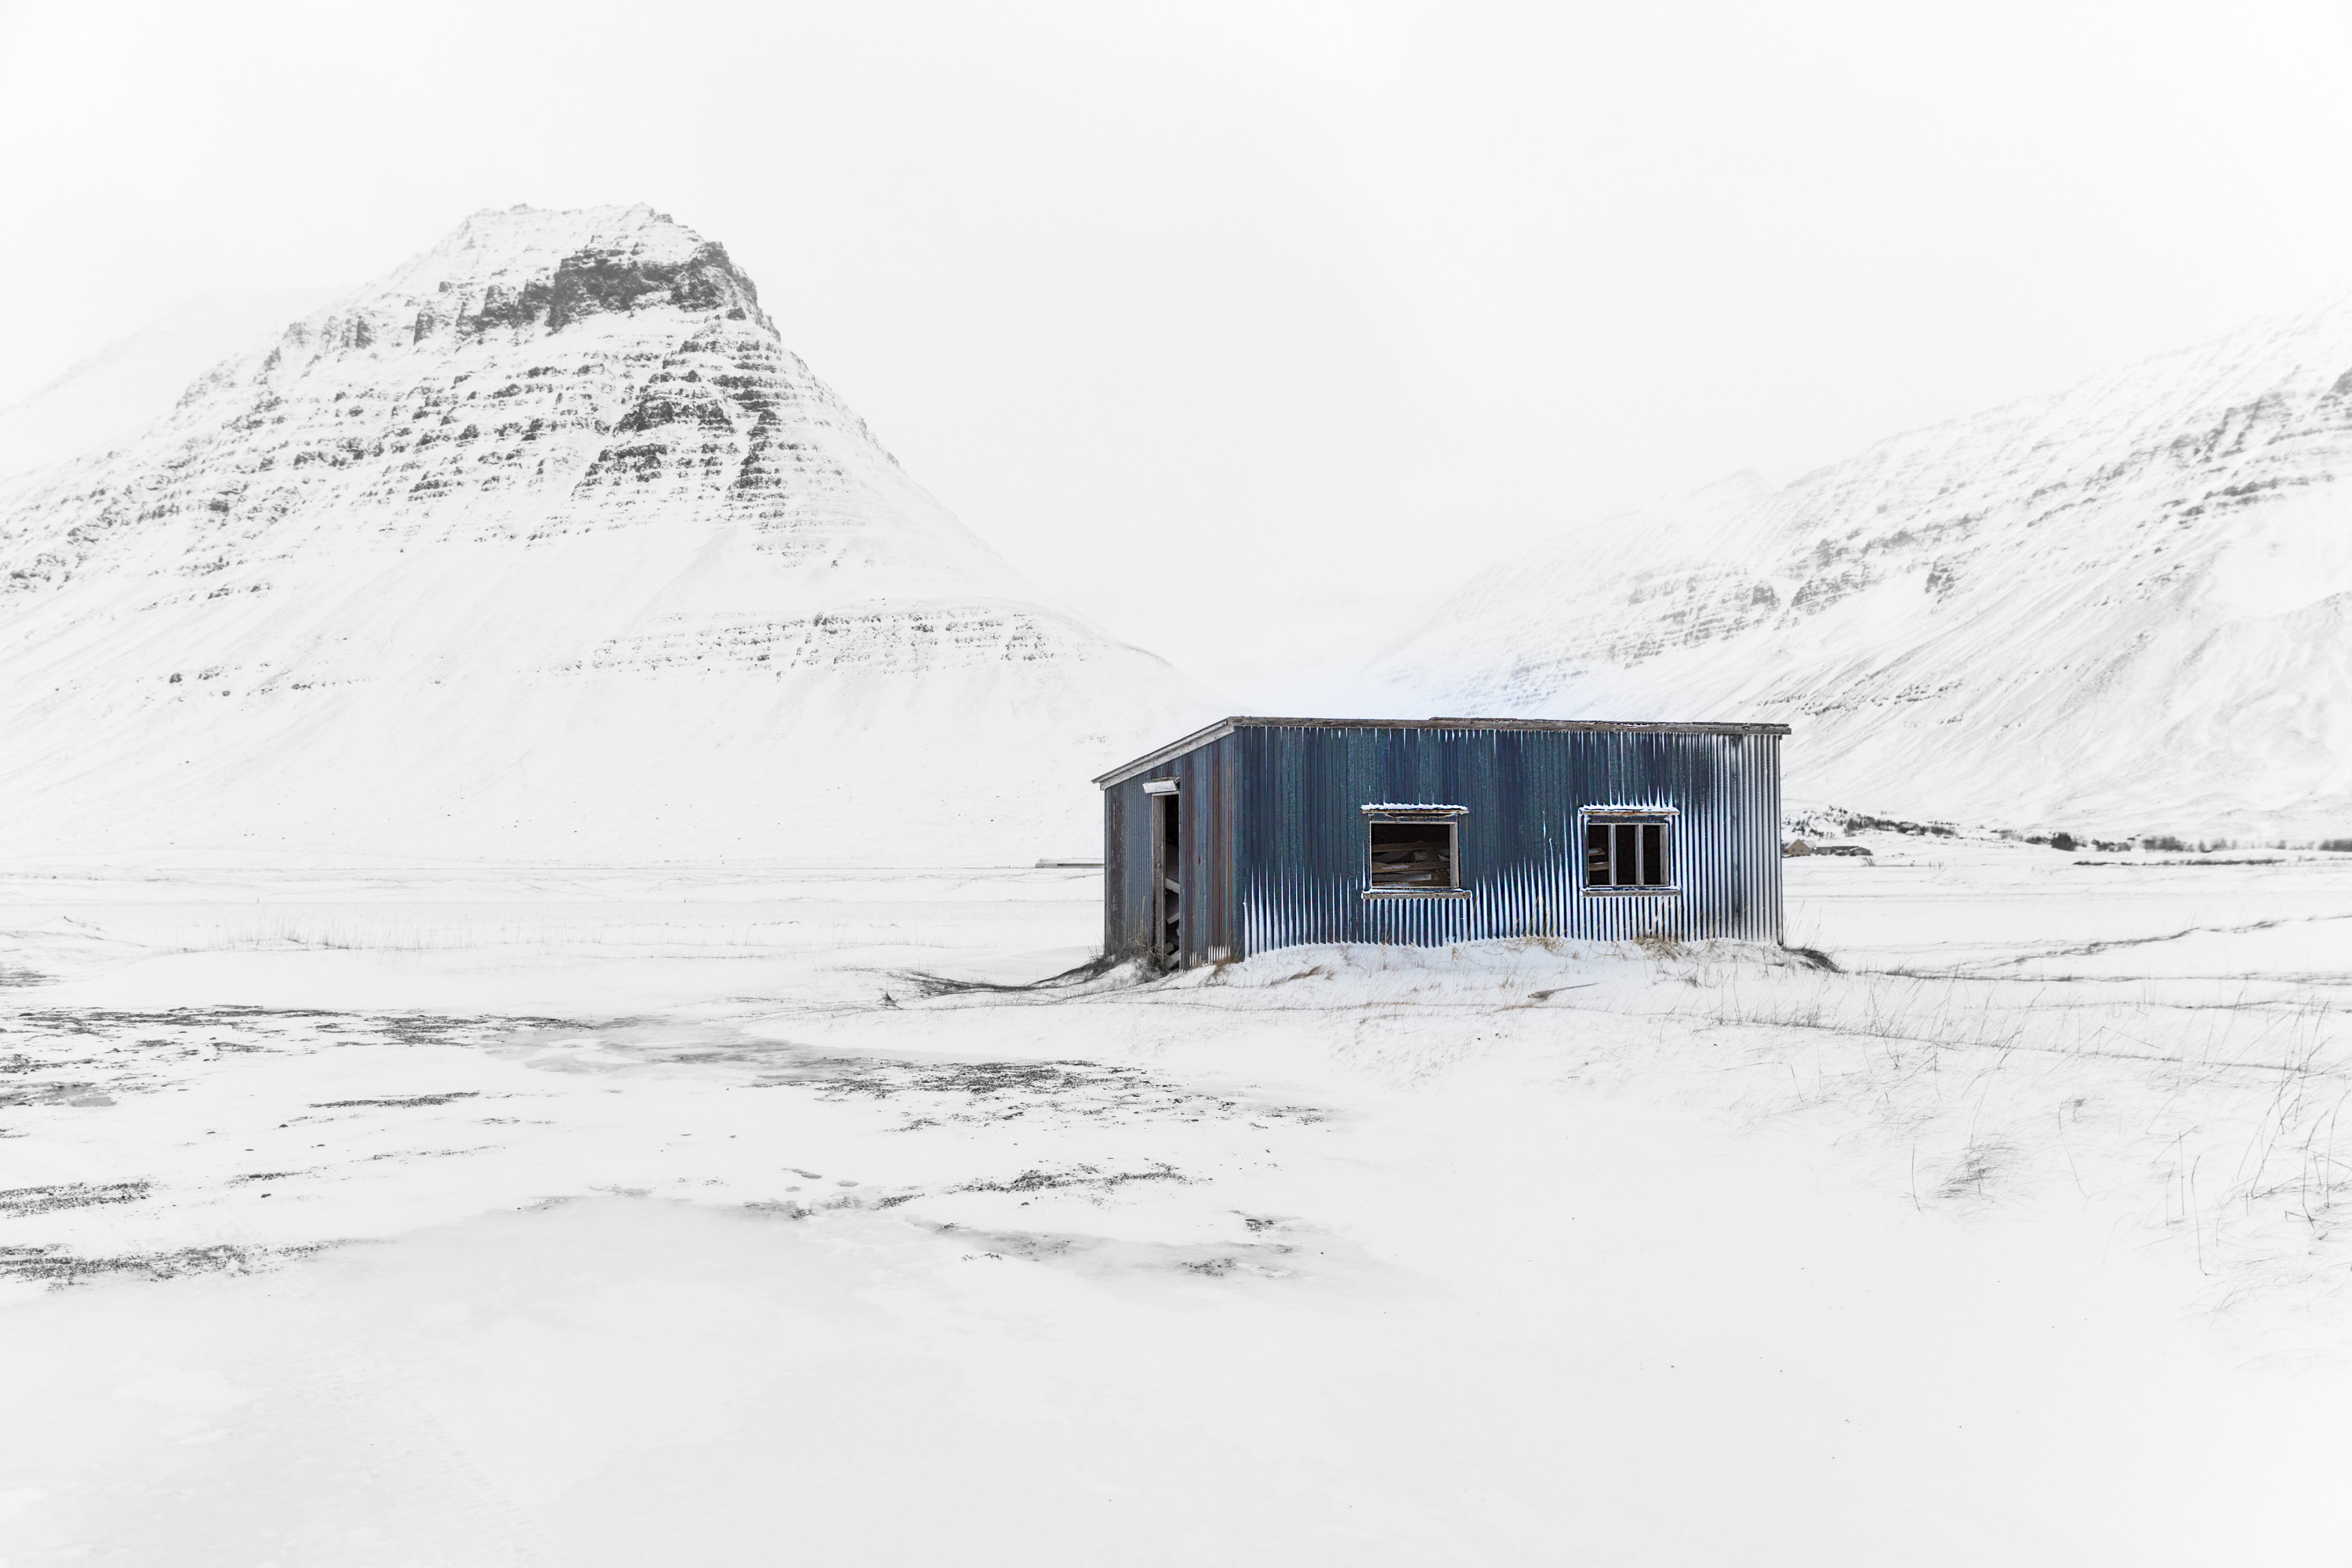 ICELAND-WESTFJORDS-WINTER